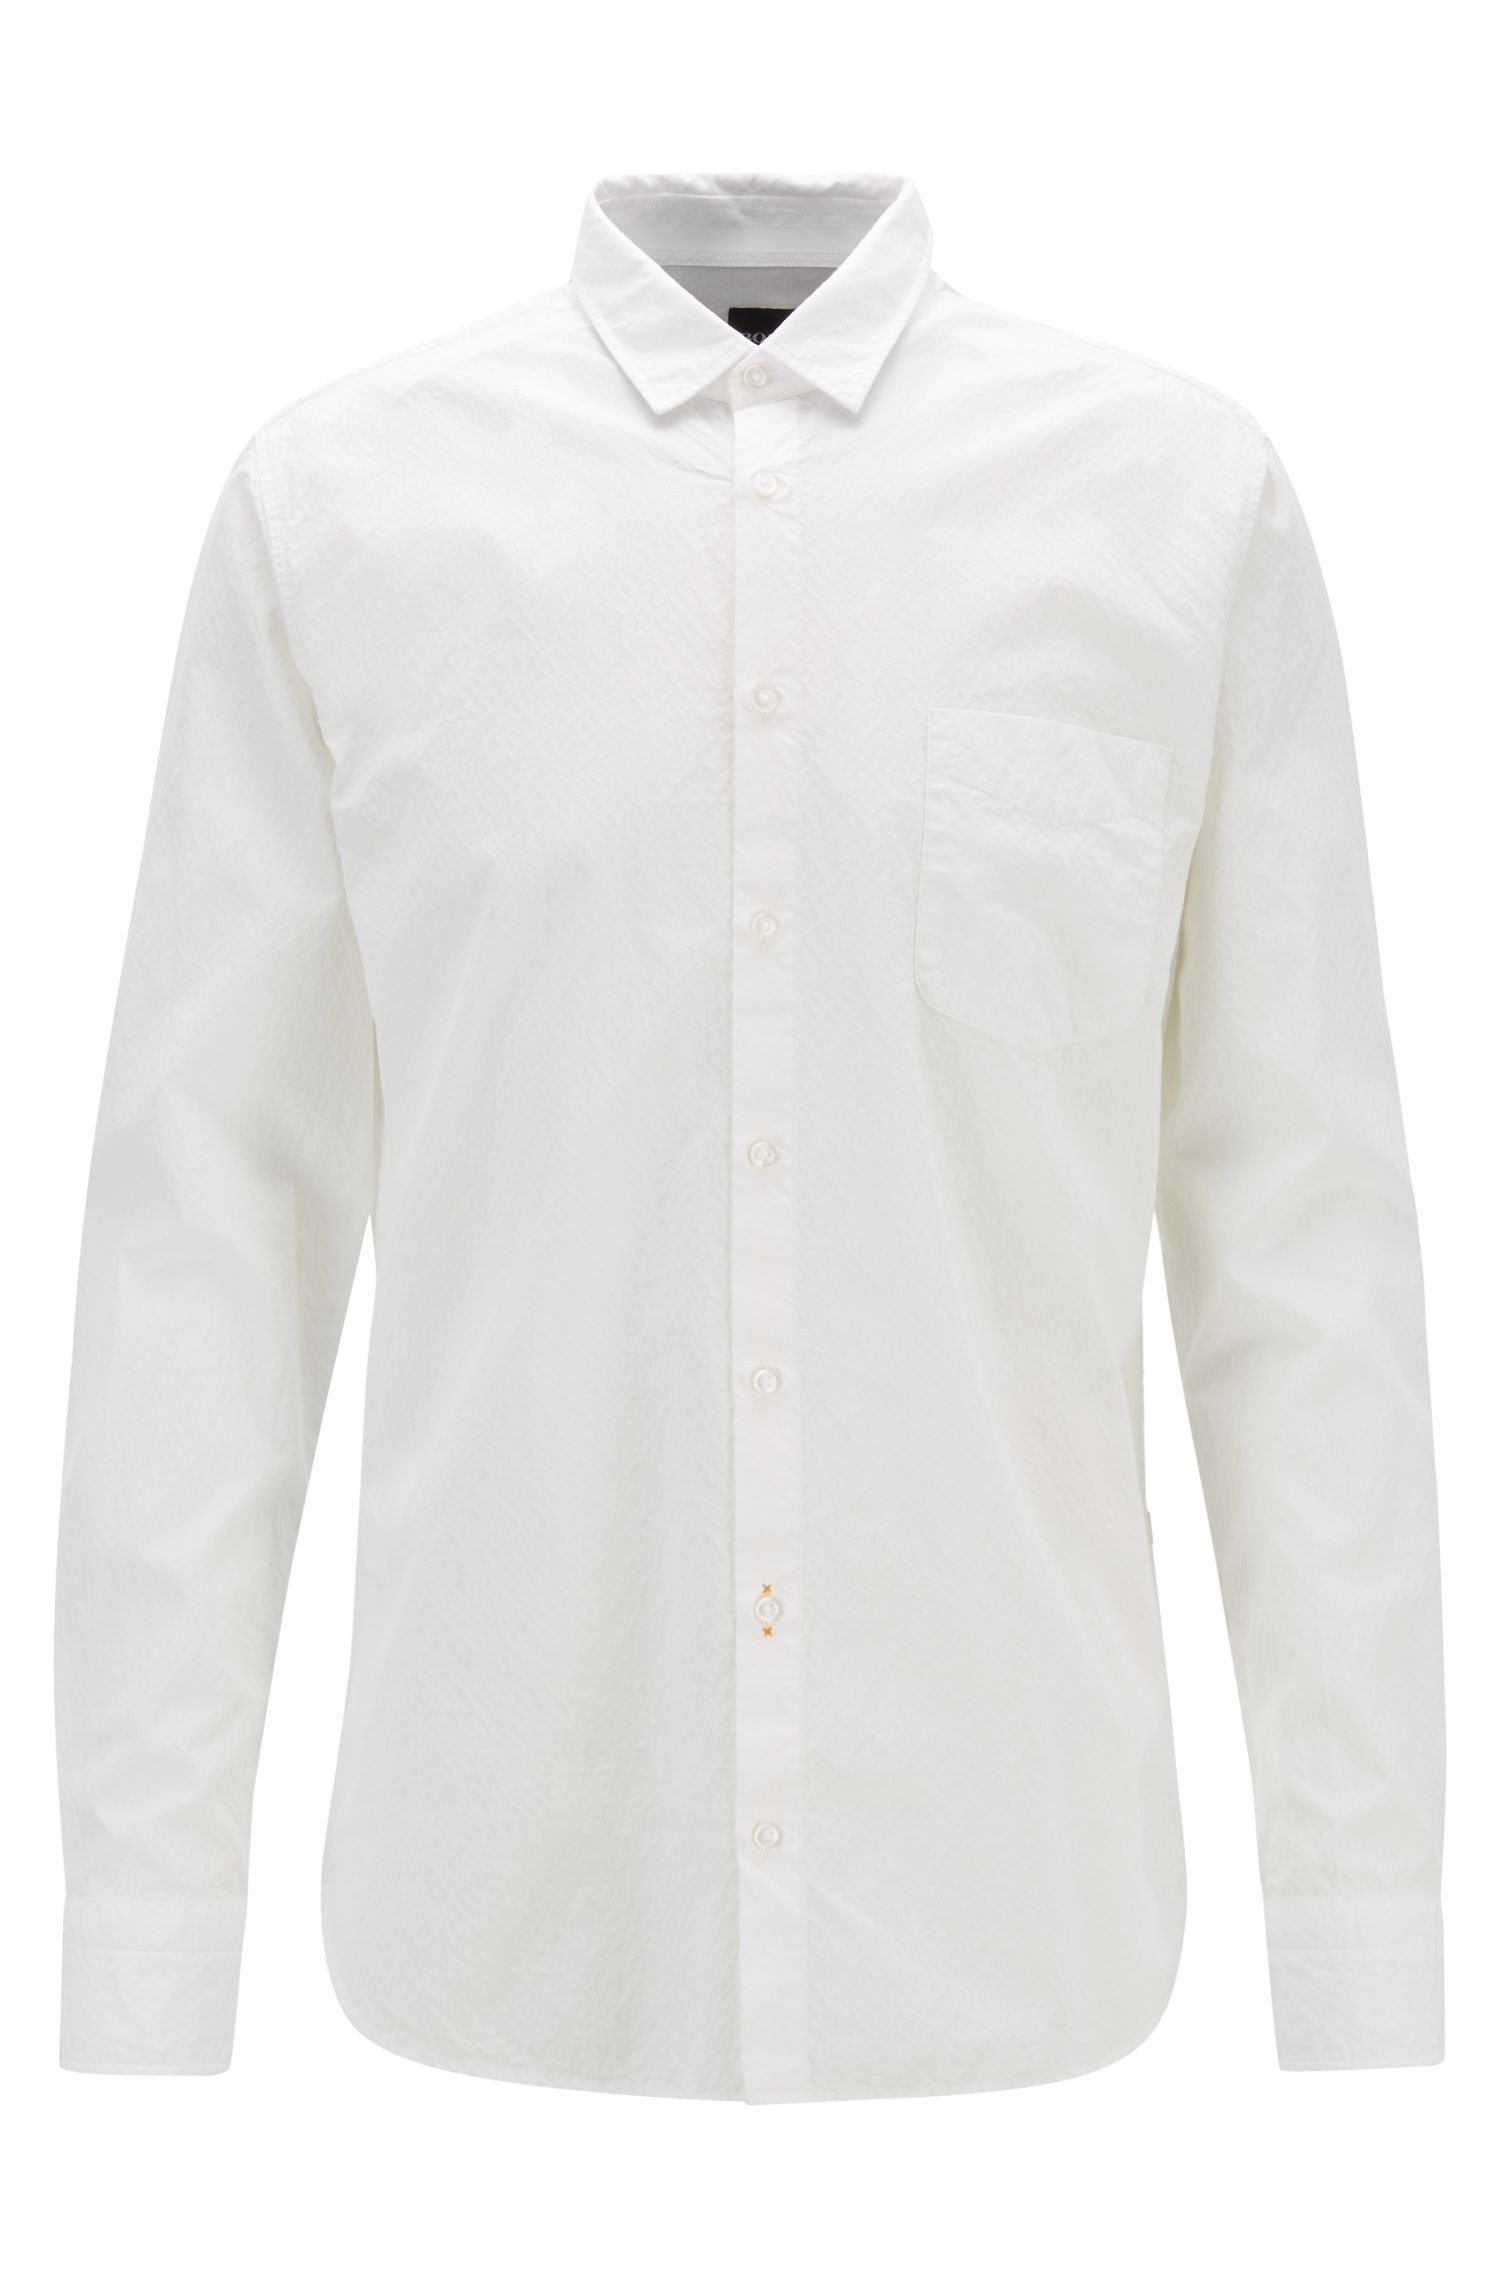 Dobby slim-fit shirt in eco-friendly bleached cotton, Natural